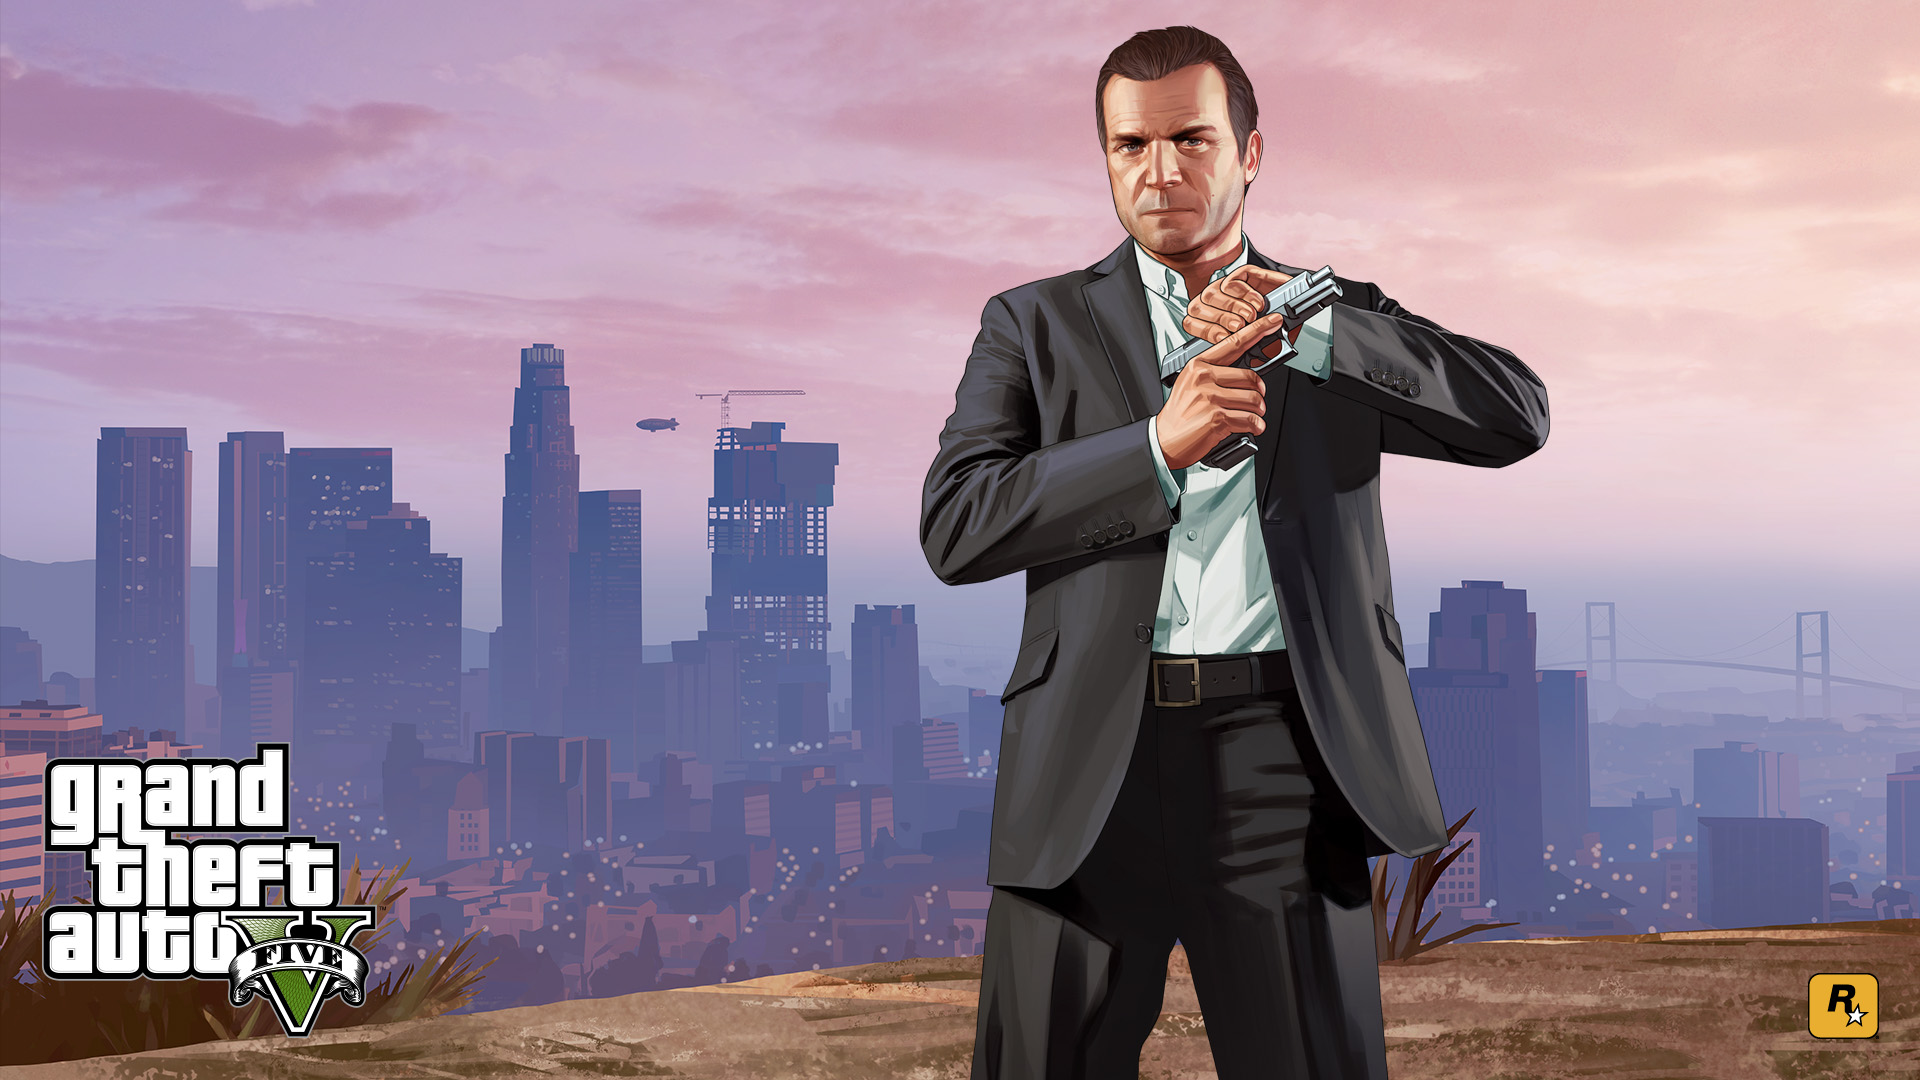 Grand theft auto 4 episodes from liberty city repack : free programs, utilities and apps